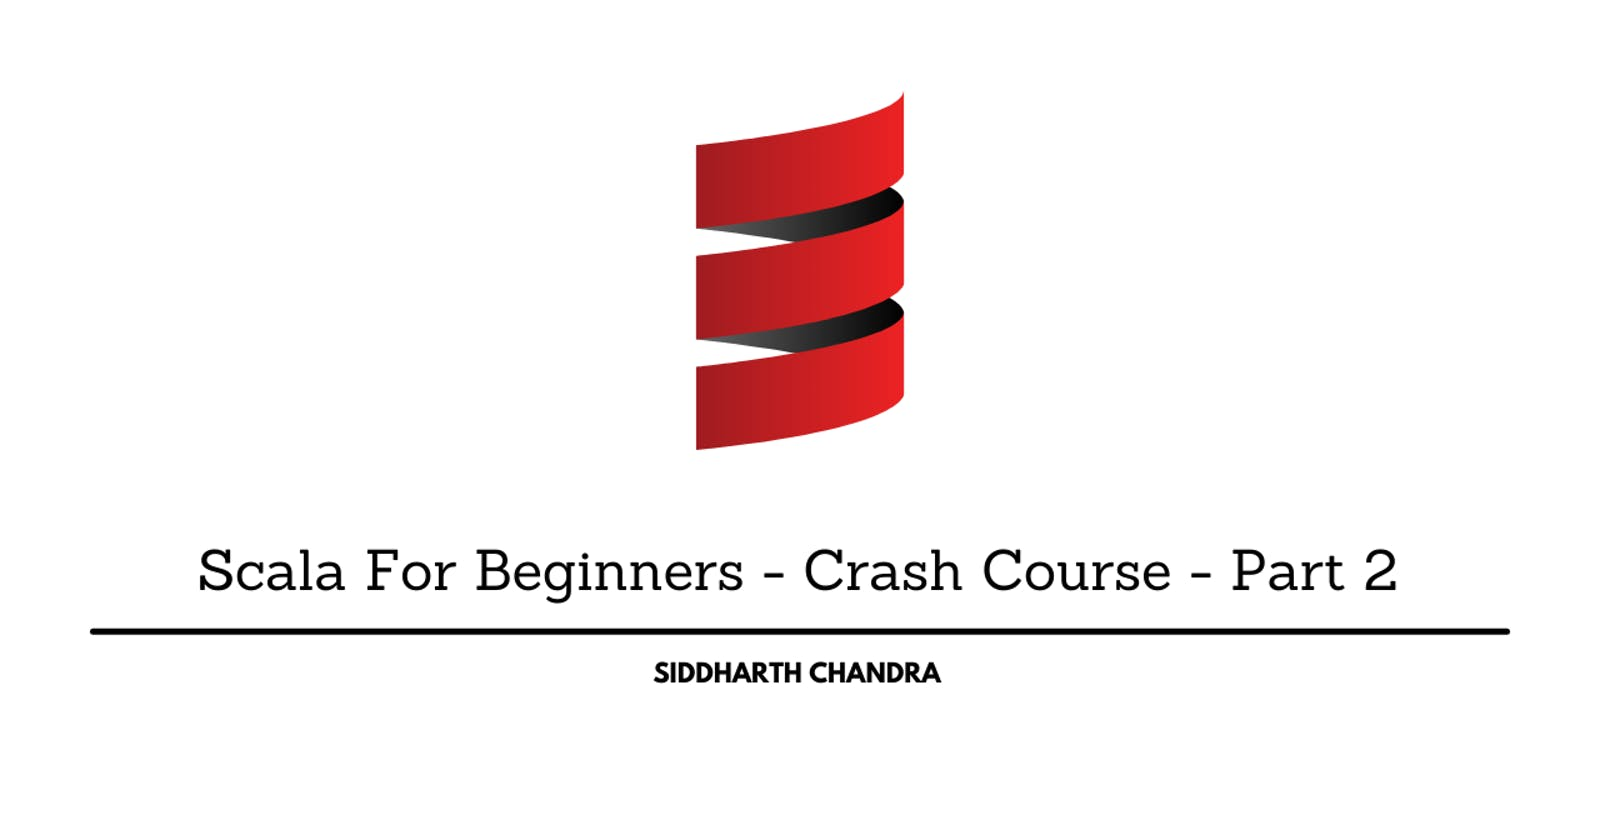 Scala For Beginners - Crash Course - Part 2